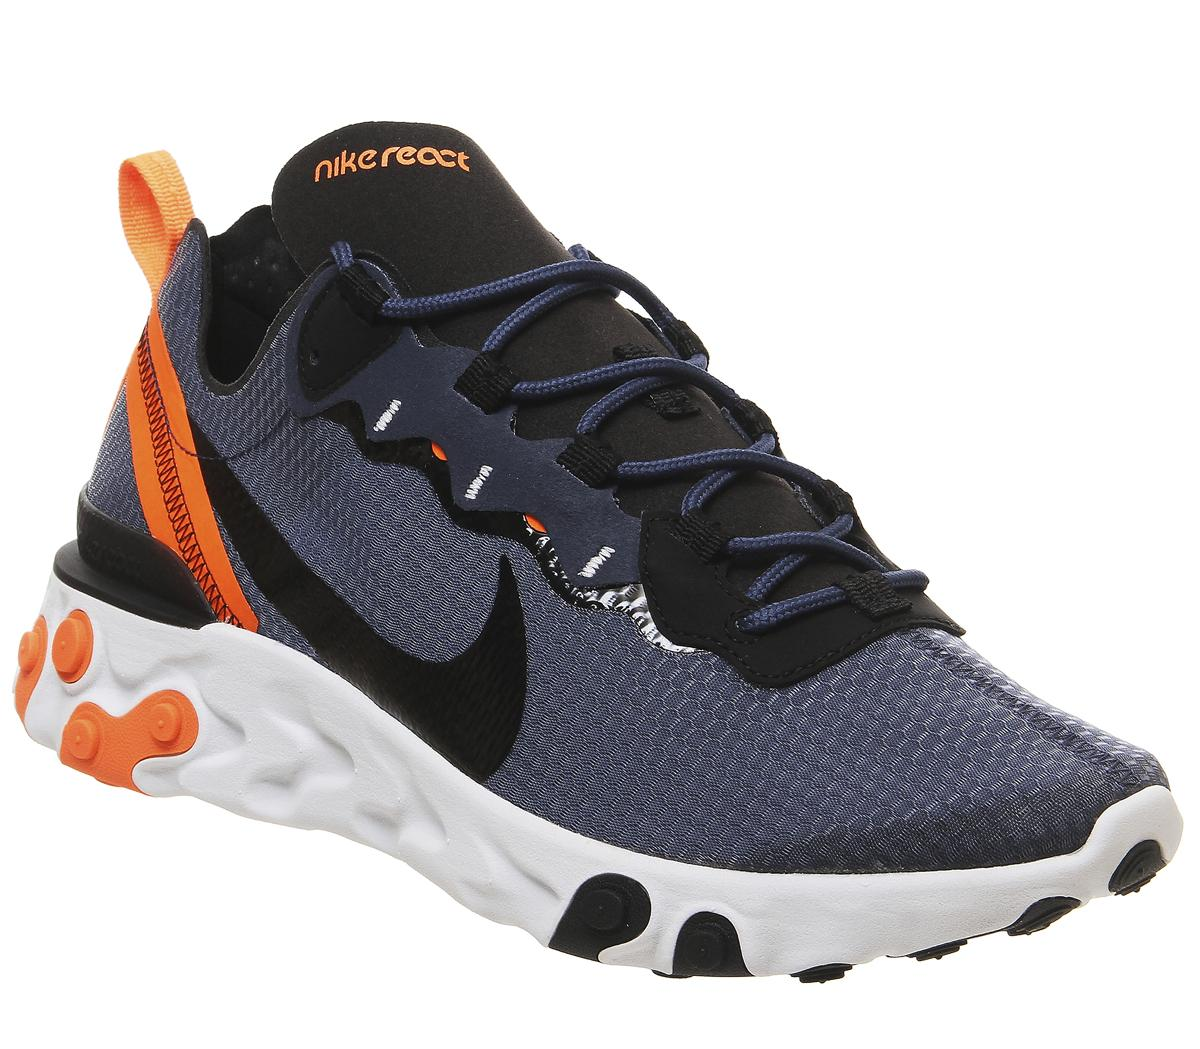 Haz un esfuerzo medianoche Precipicio  Nike Element React 55 Trainers Midnight Navy Black Total Orange - His  trainers